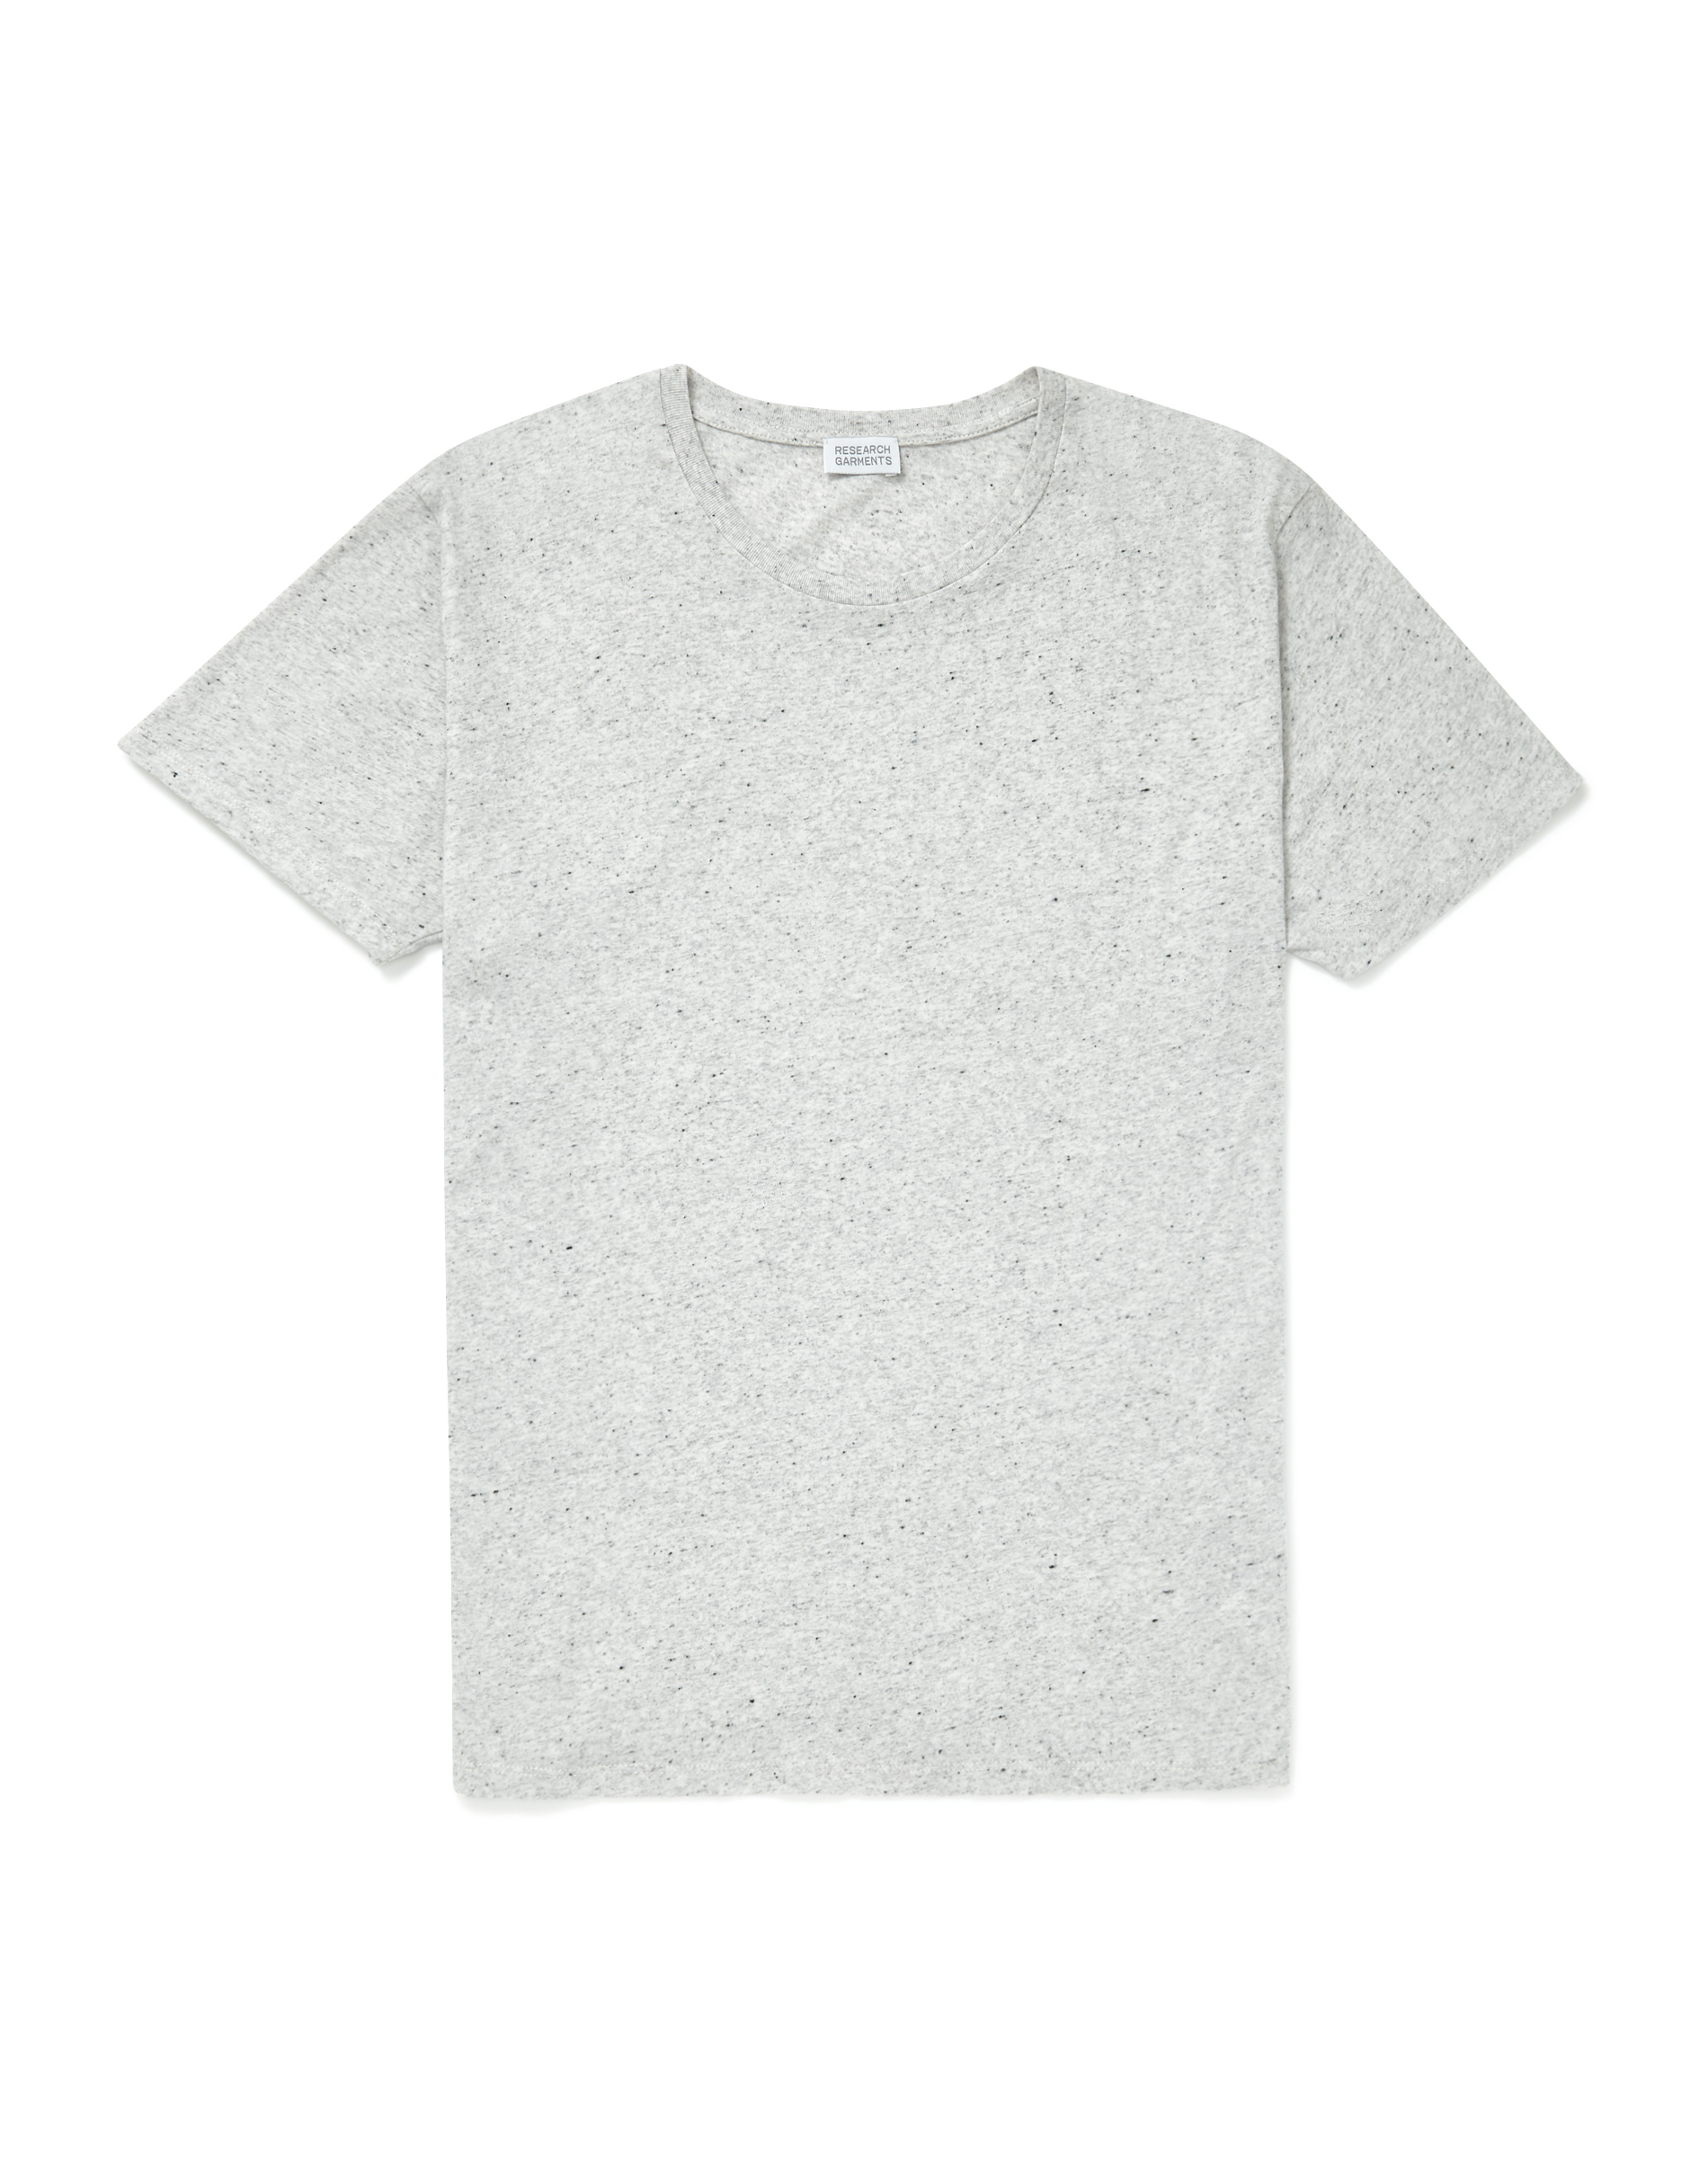 Research Garments White Marl The Perfect Textured Tee